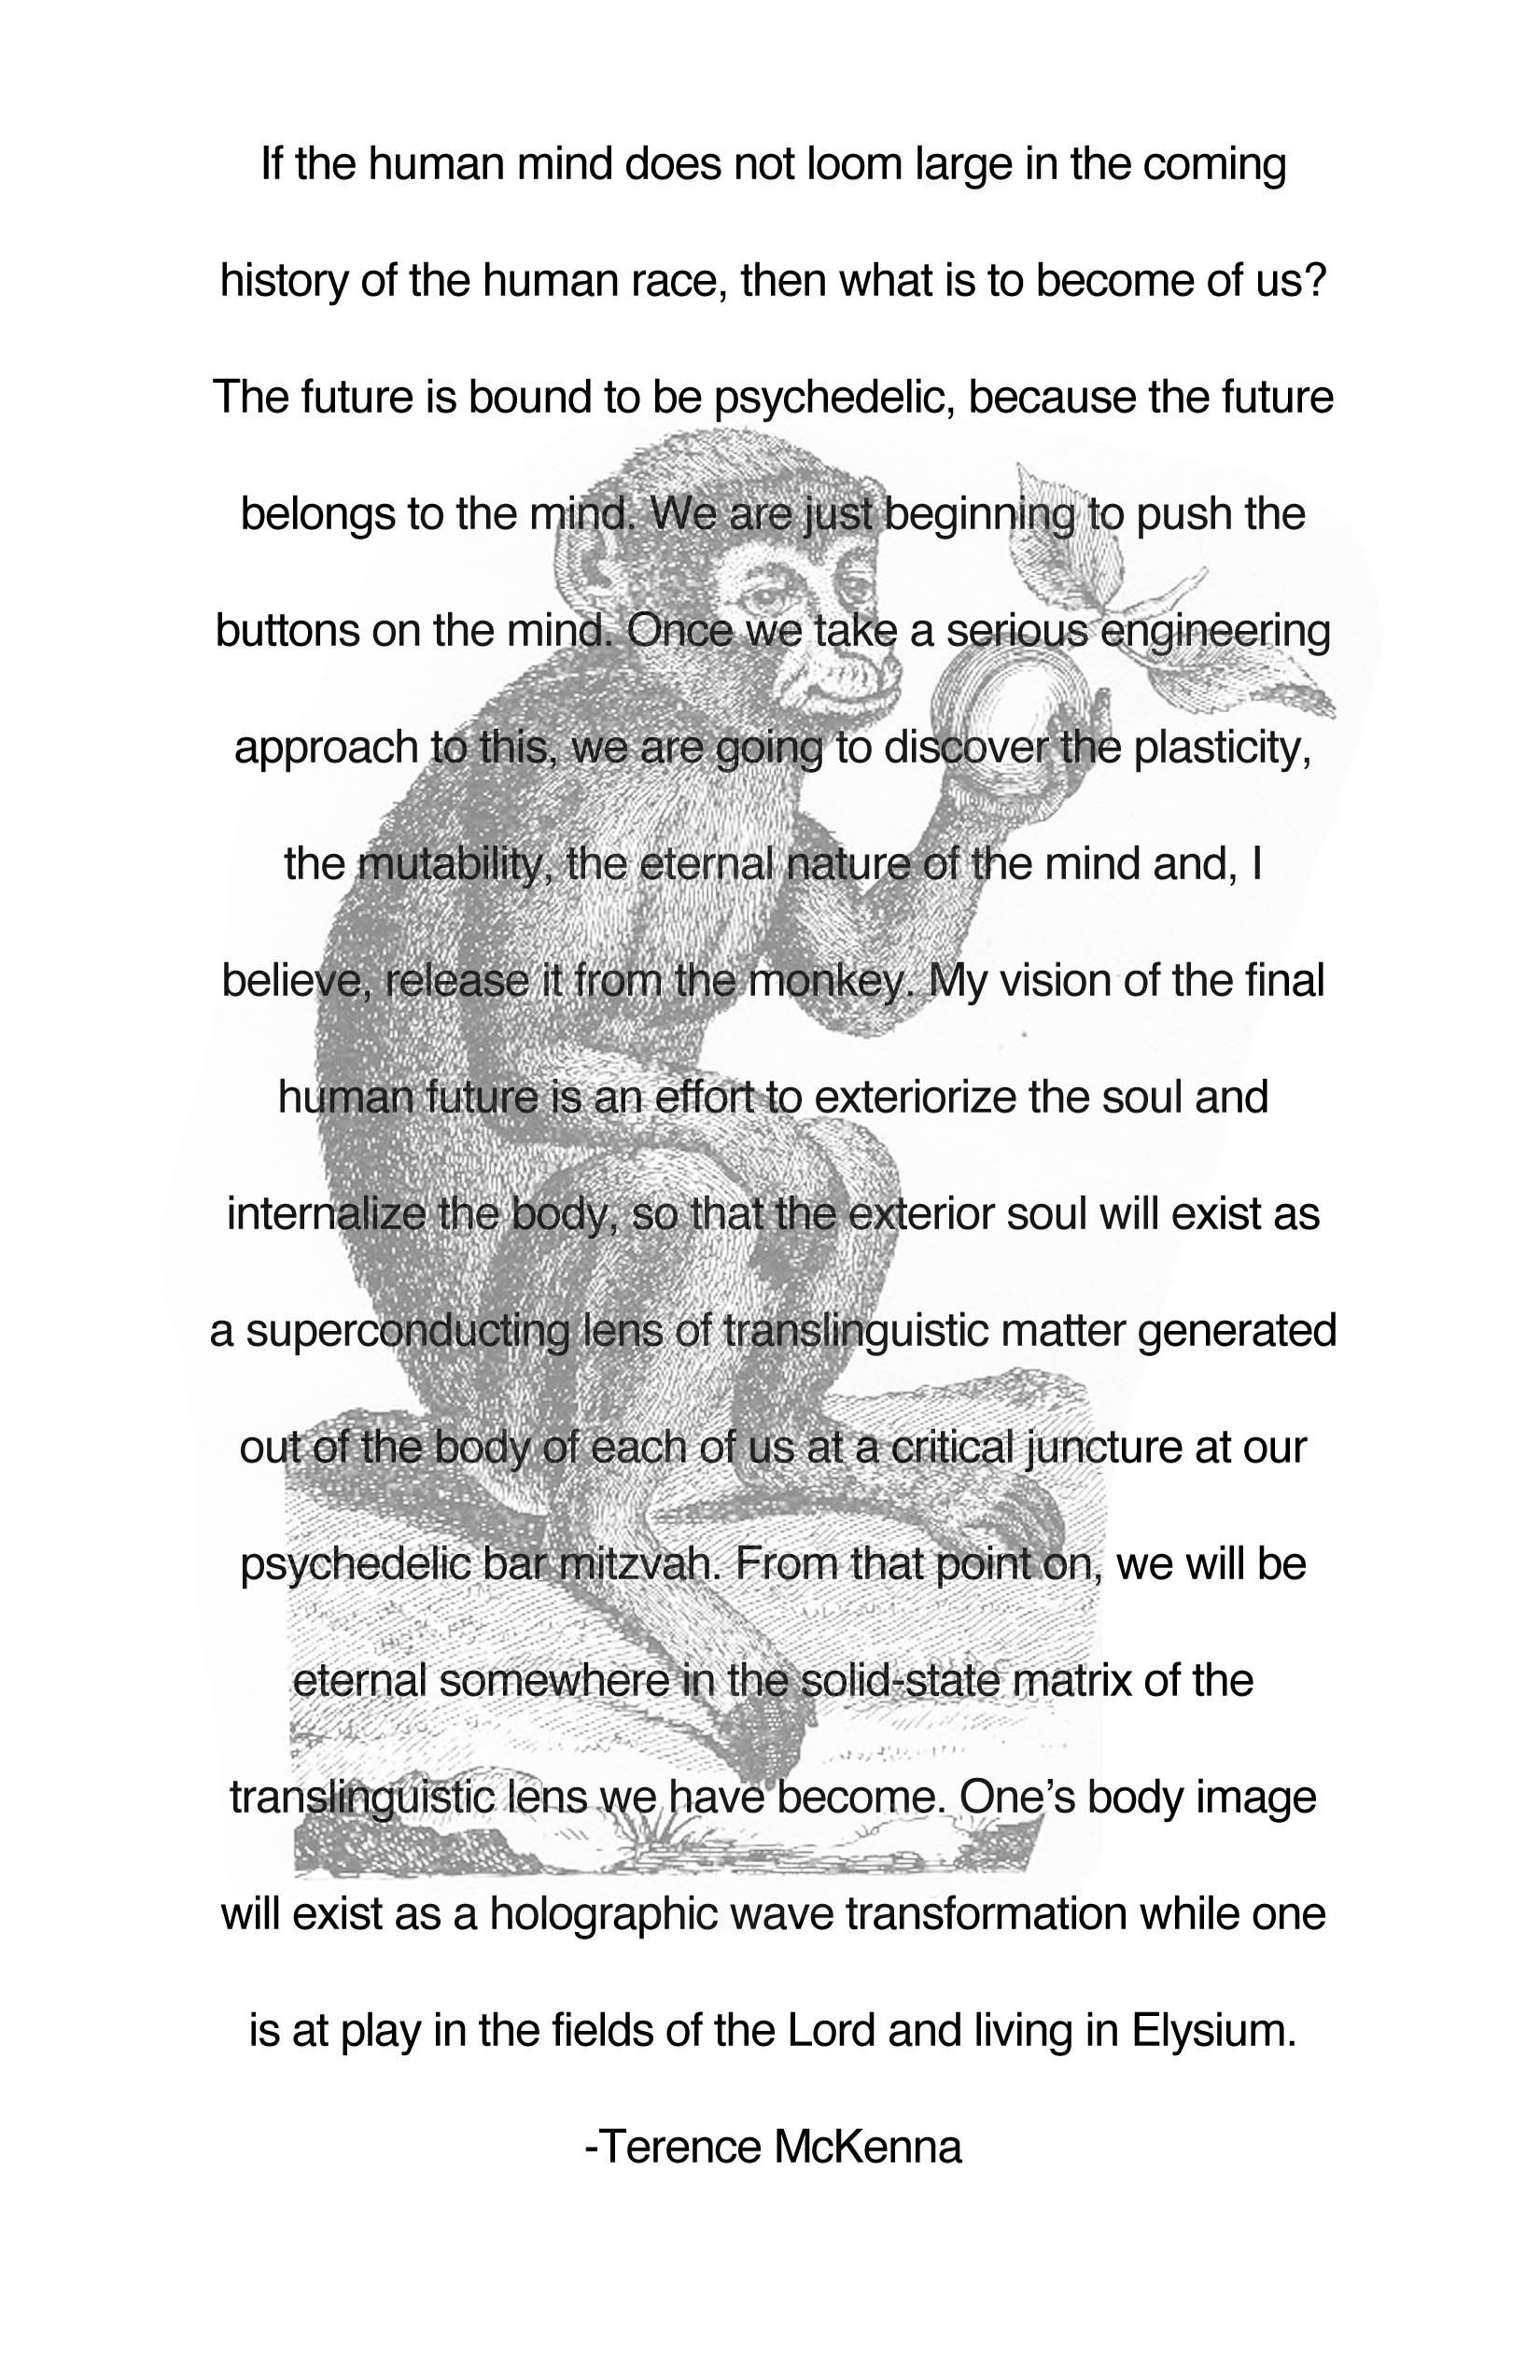 Terence McKenna's quote #6